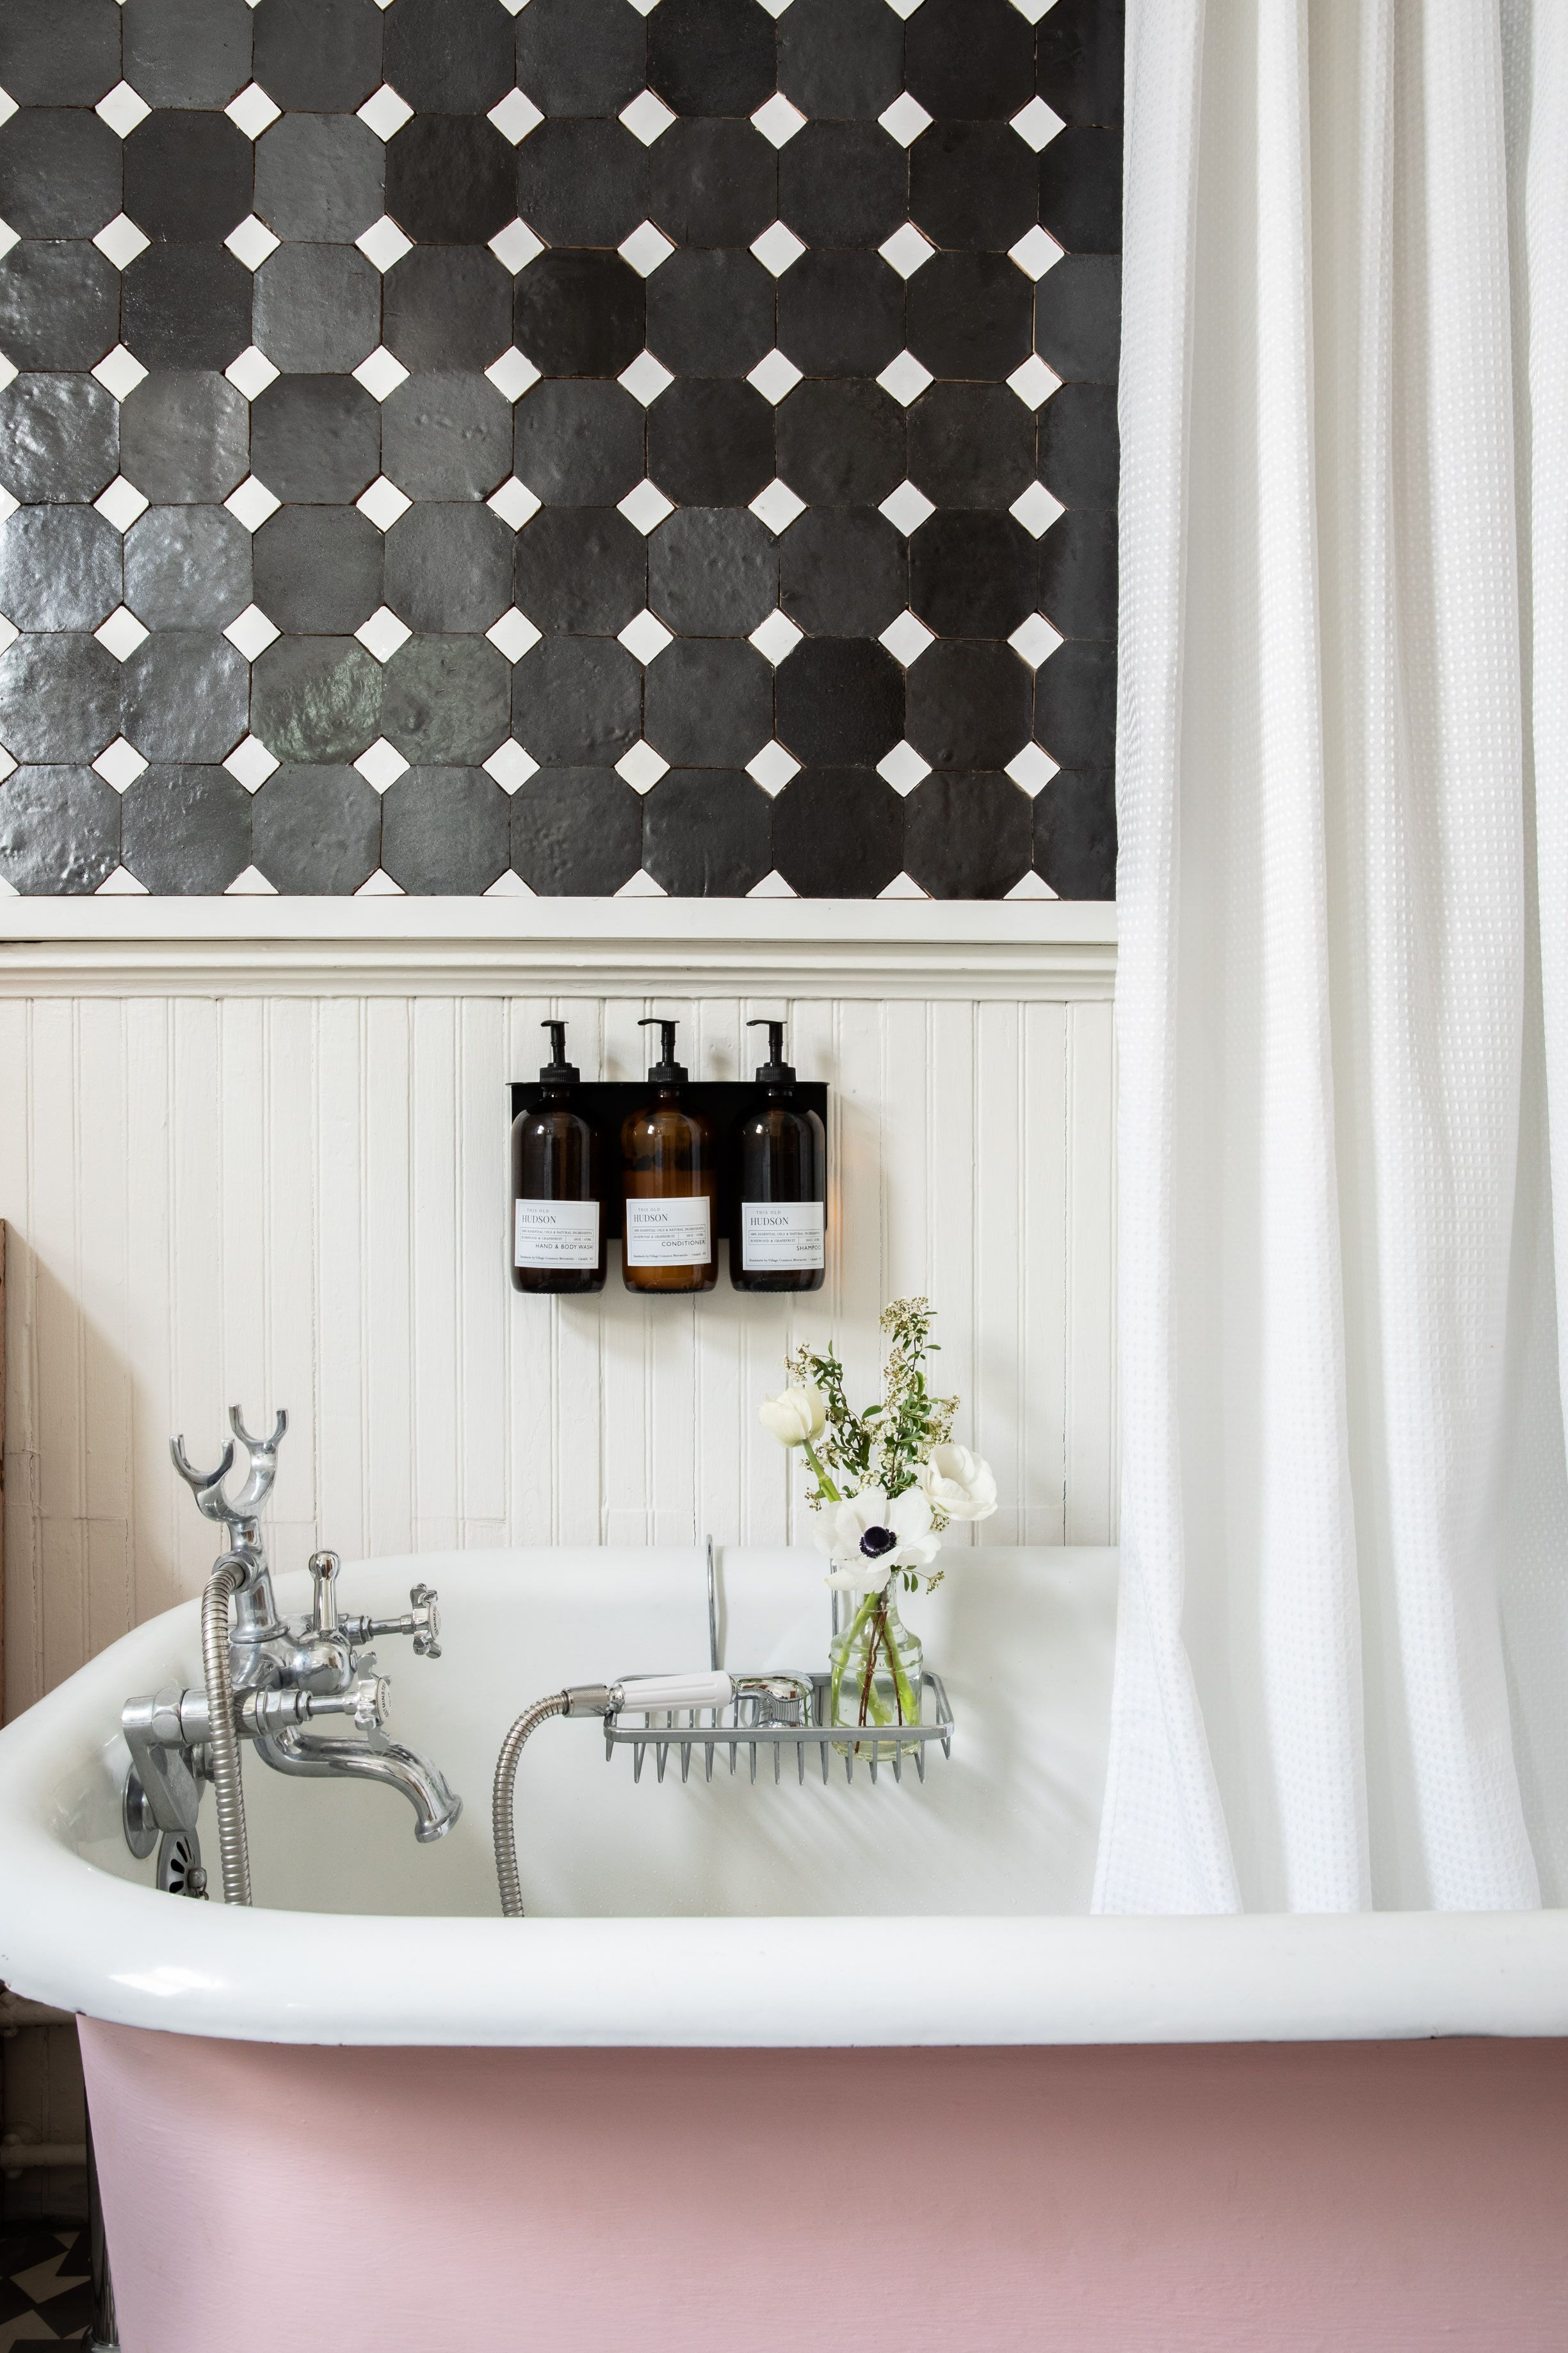 Clé Tile Just Launched the Coolest Tile Collection with